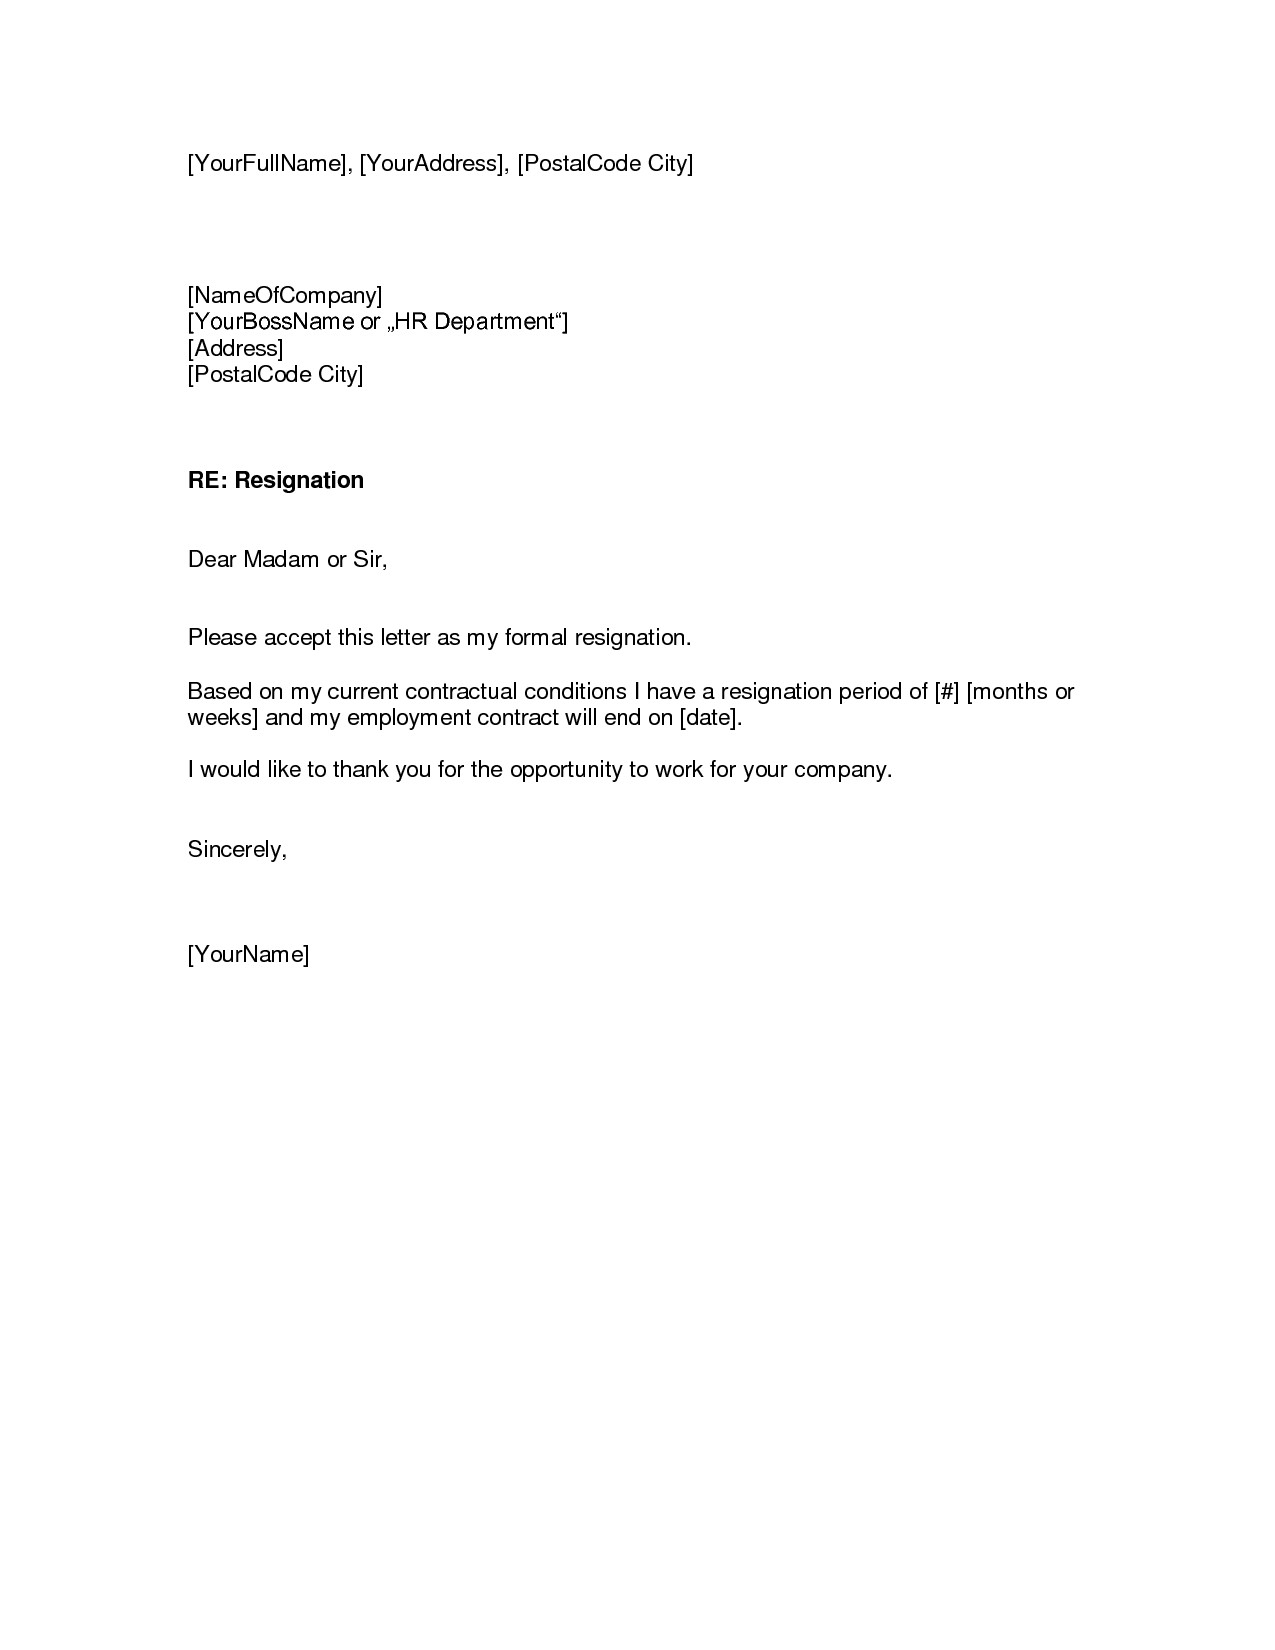 Resignation Letter Template Word - Employment Fer Letter Template Doc Copy Resignation Letter Sample